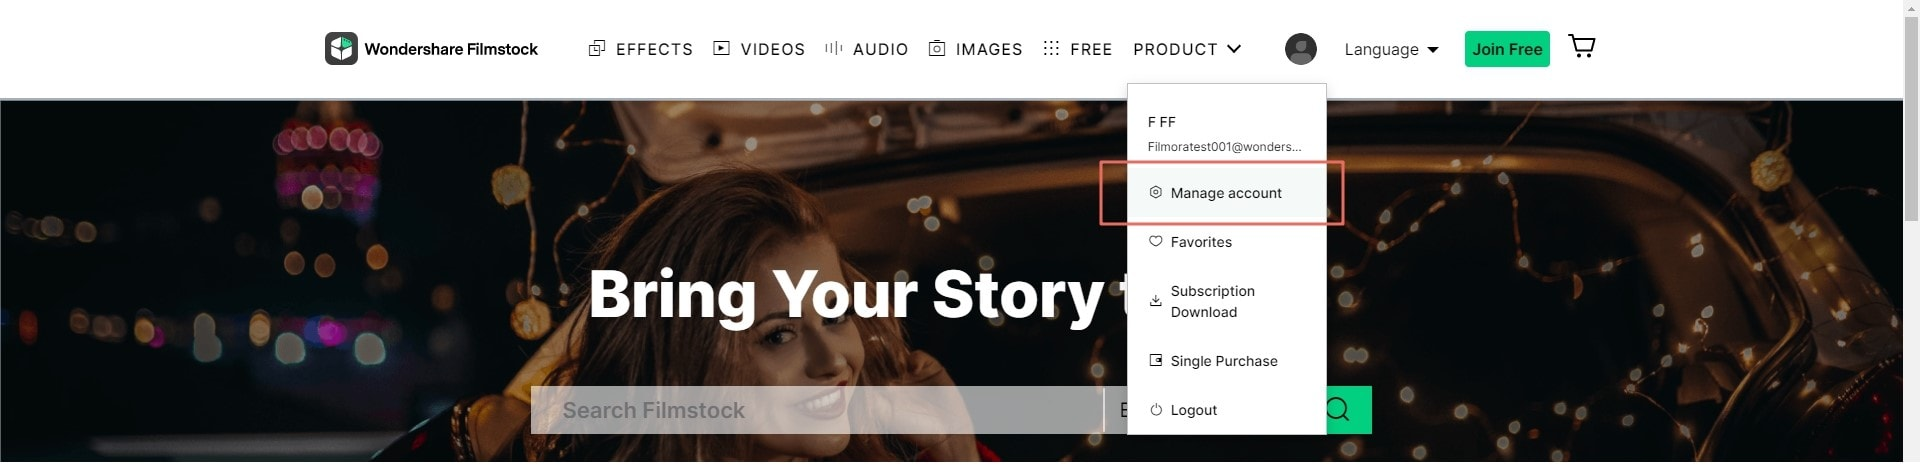 manage filmstocks account